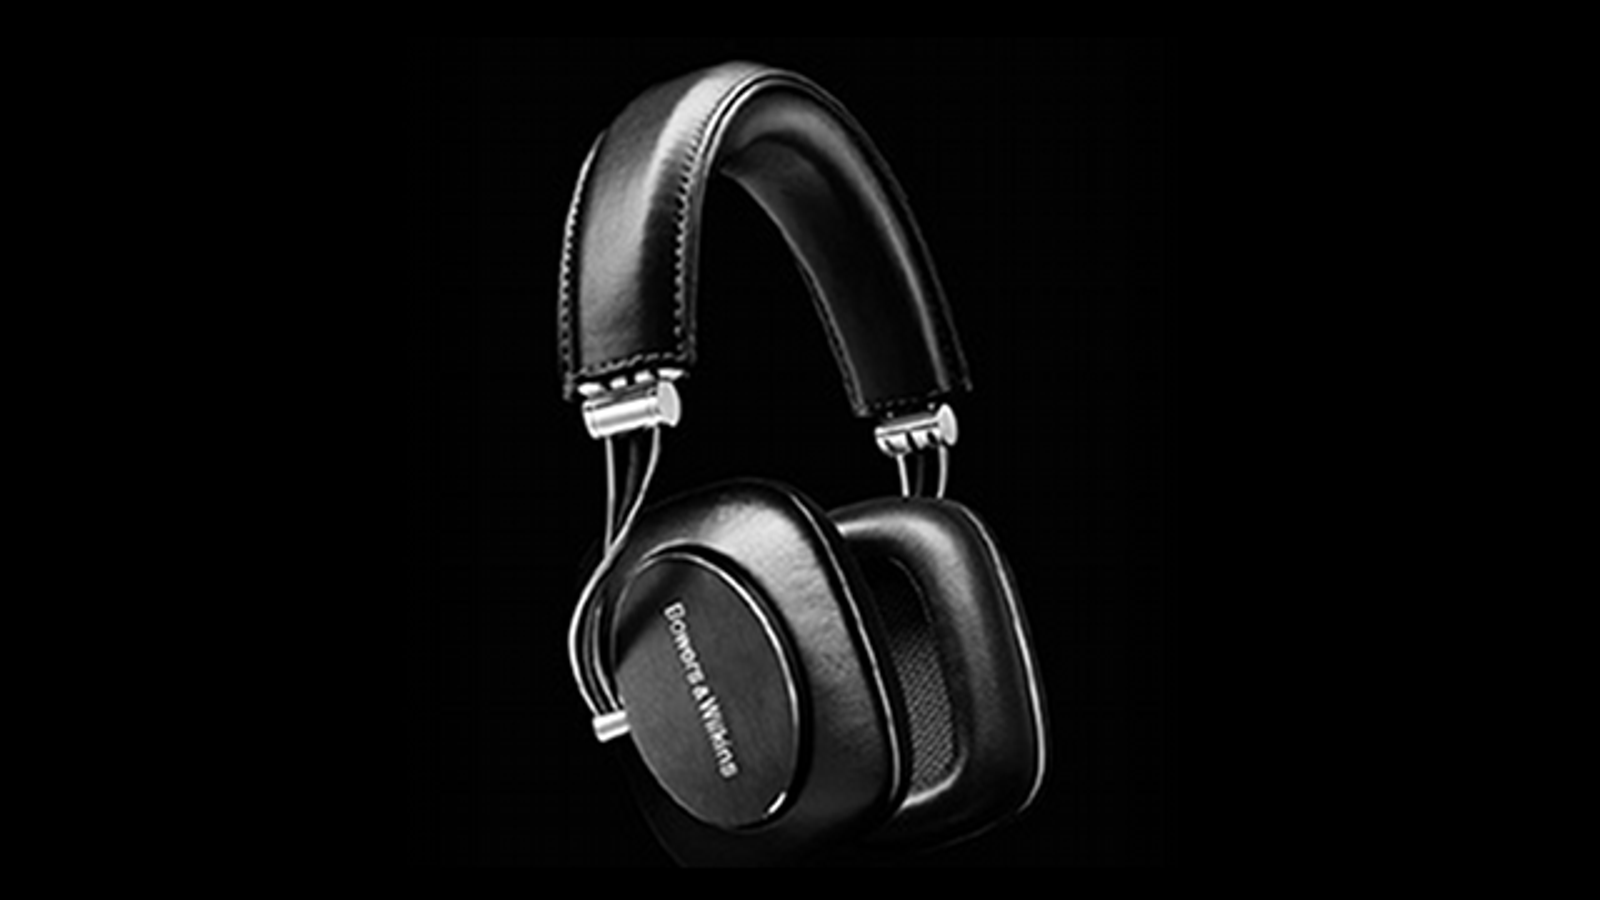 headphone converter - Bowers & Wilkins P7 Headphones: Over-Ear Excellence, Over-the-Top Price